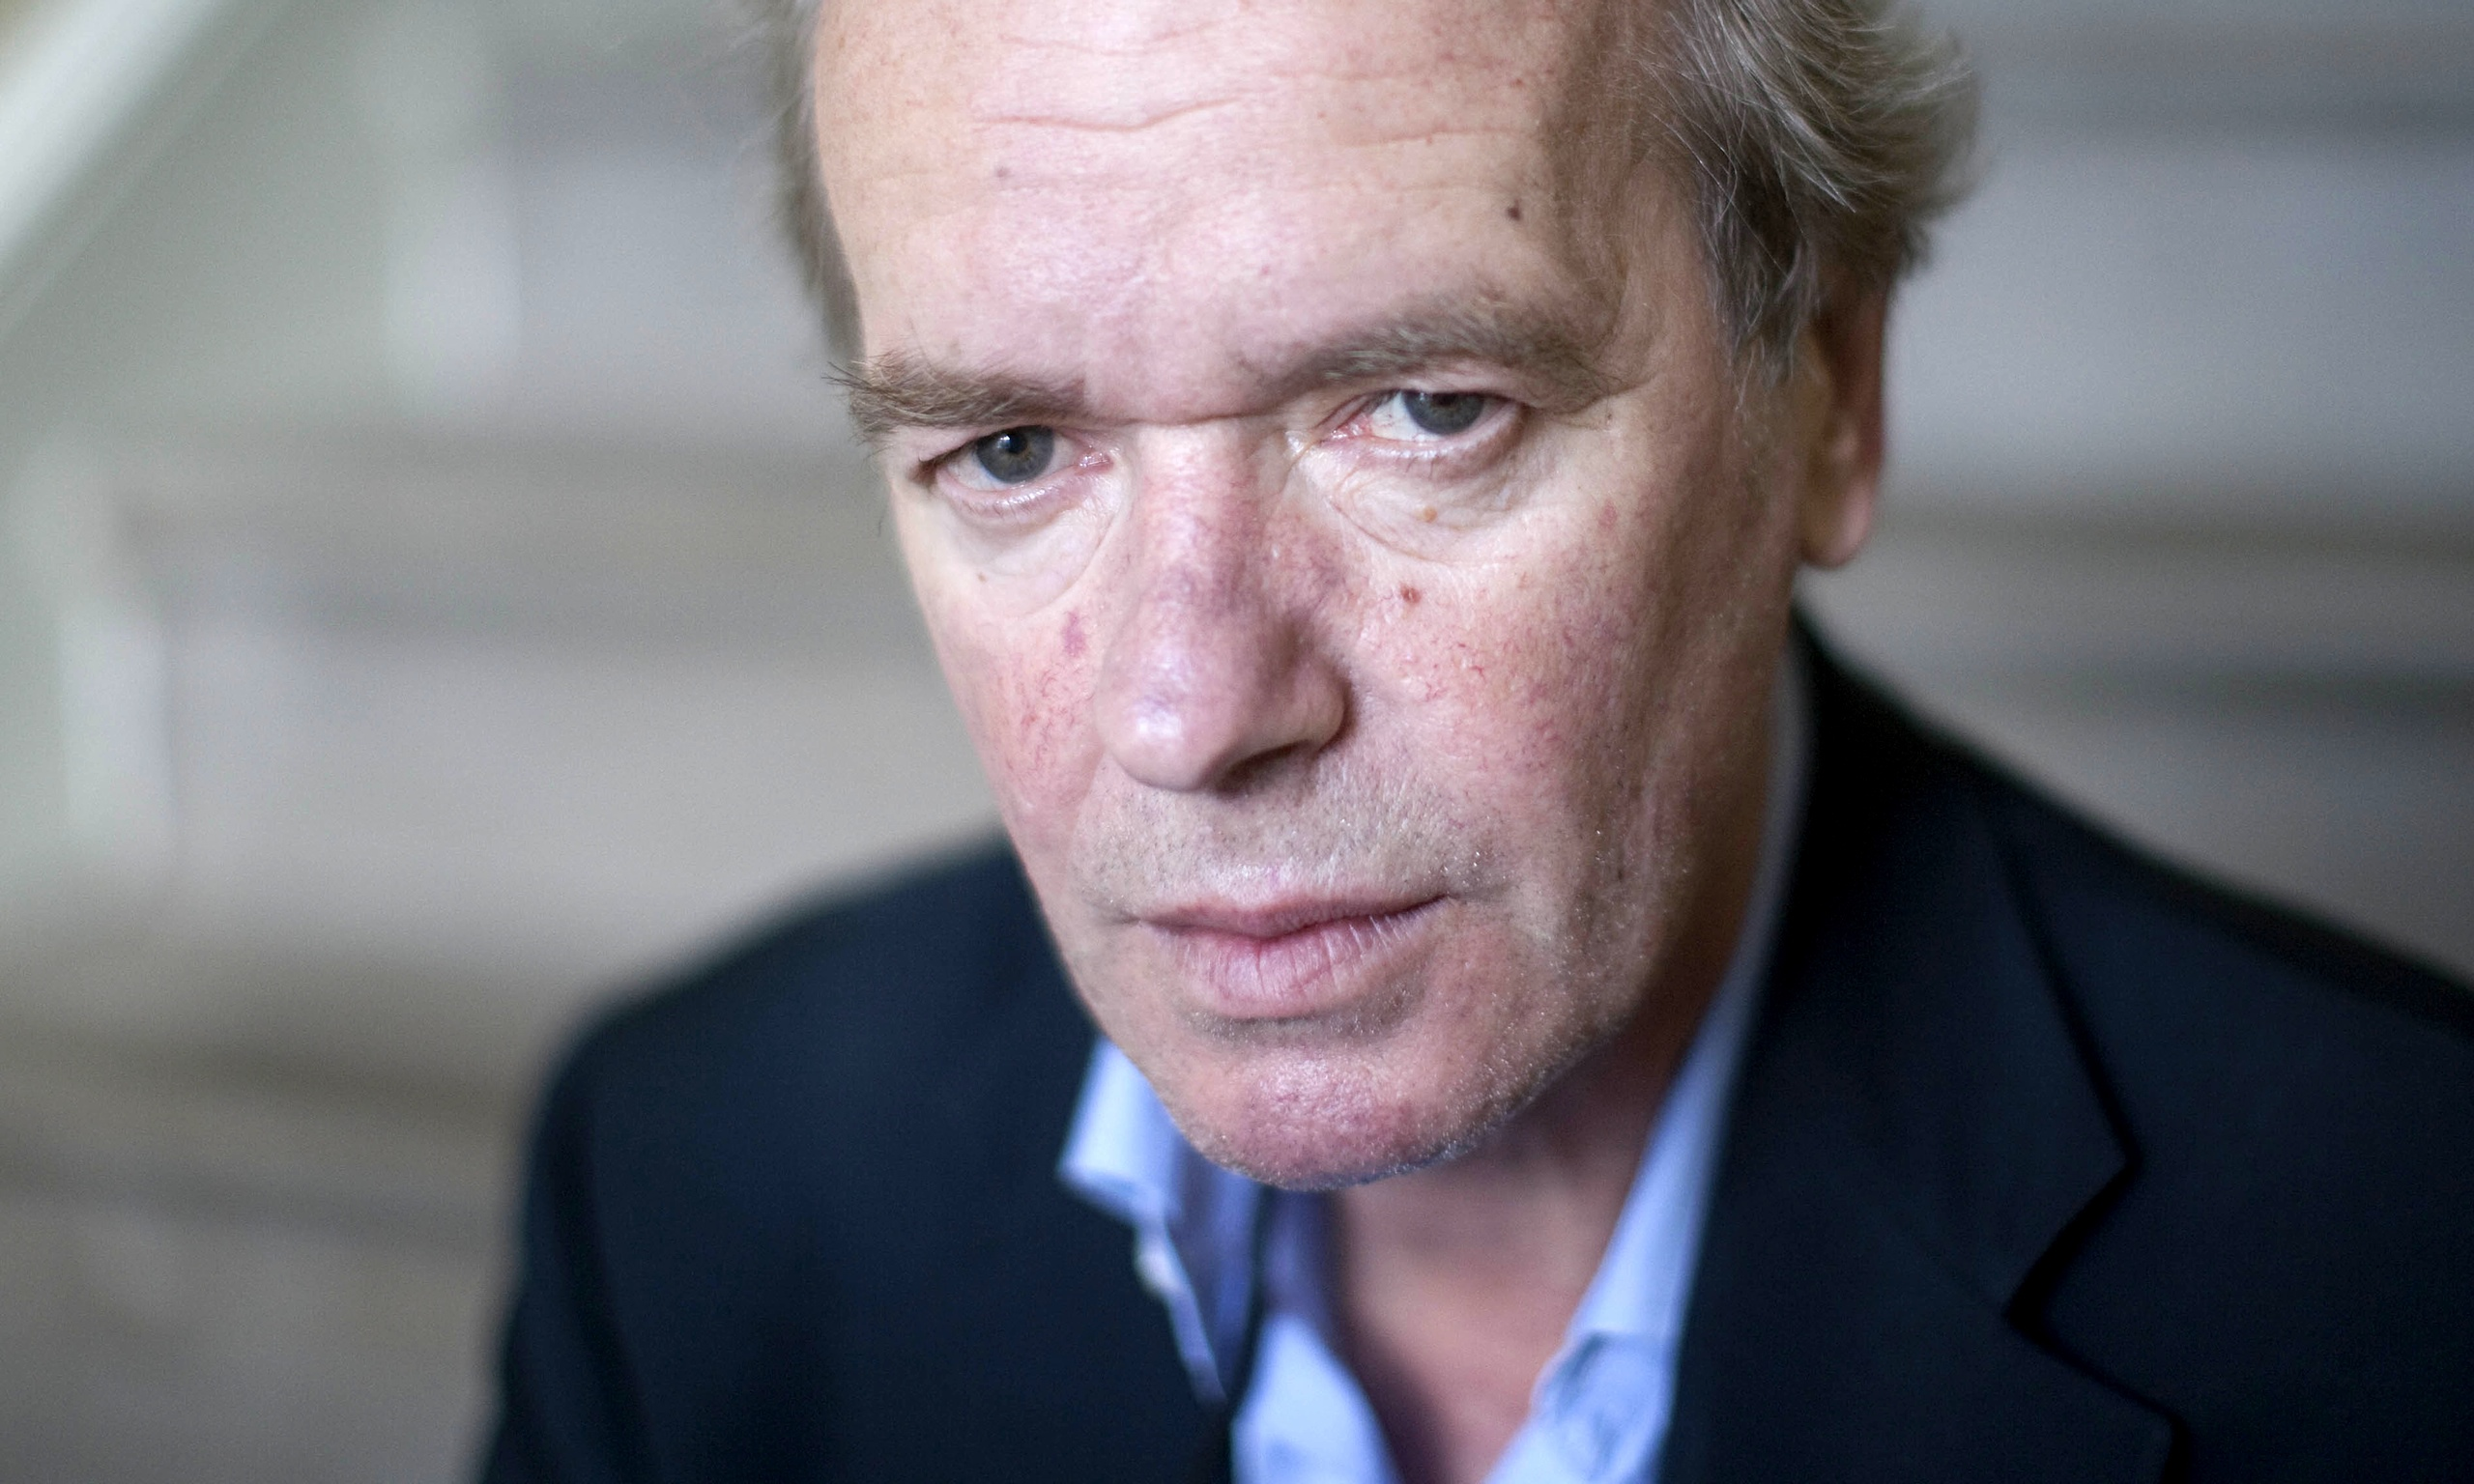 martin amis online essays When martin amis spoke to gq about his 60th birthday, he seemed defeated, noting: it all ends in dissolution and chaos and indignity and tears we can only imagine what he's thinking today, with.